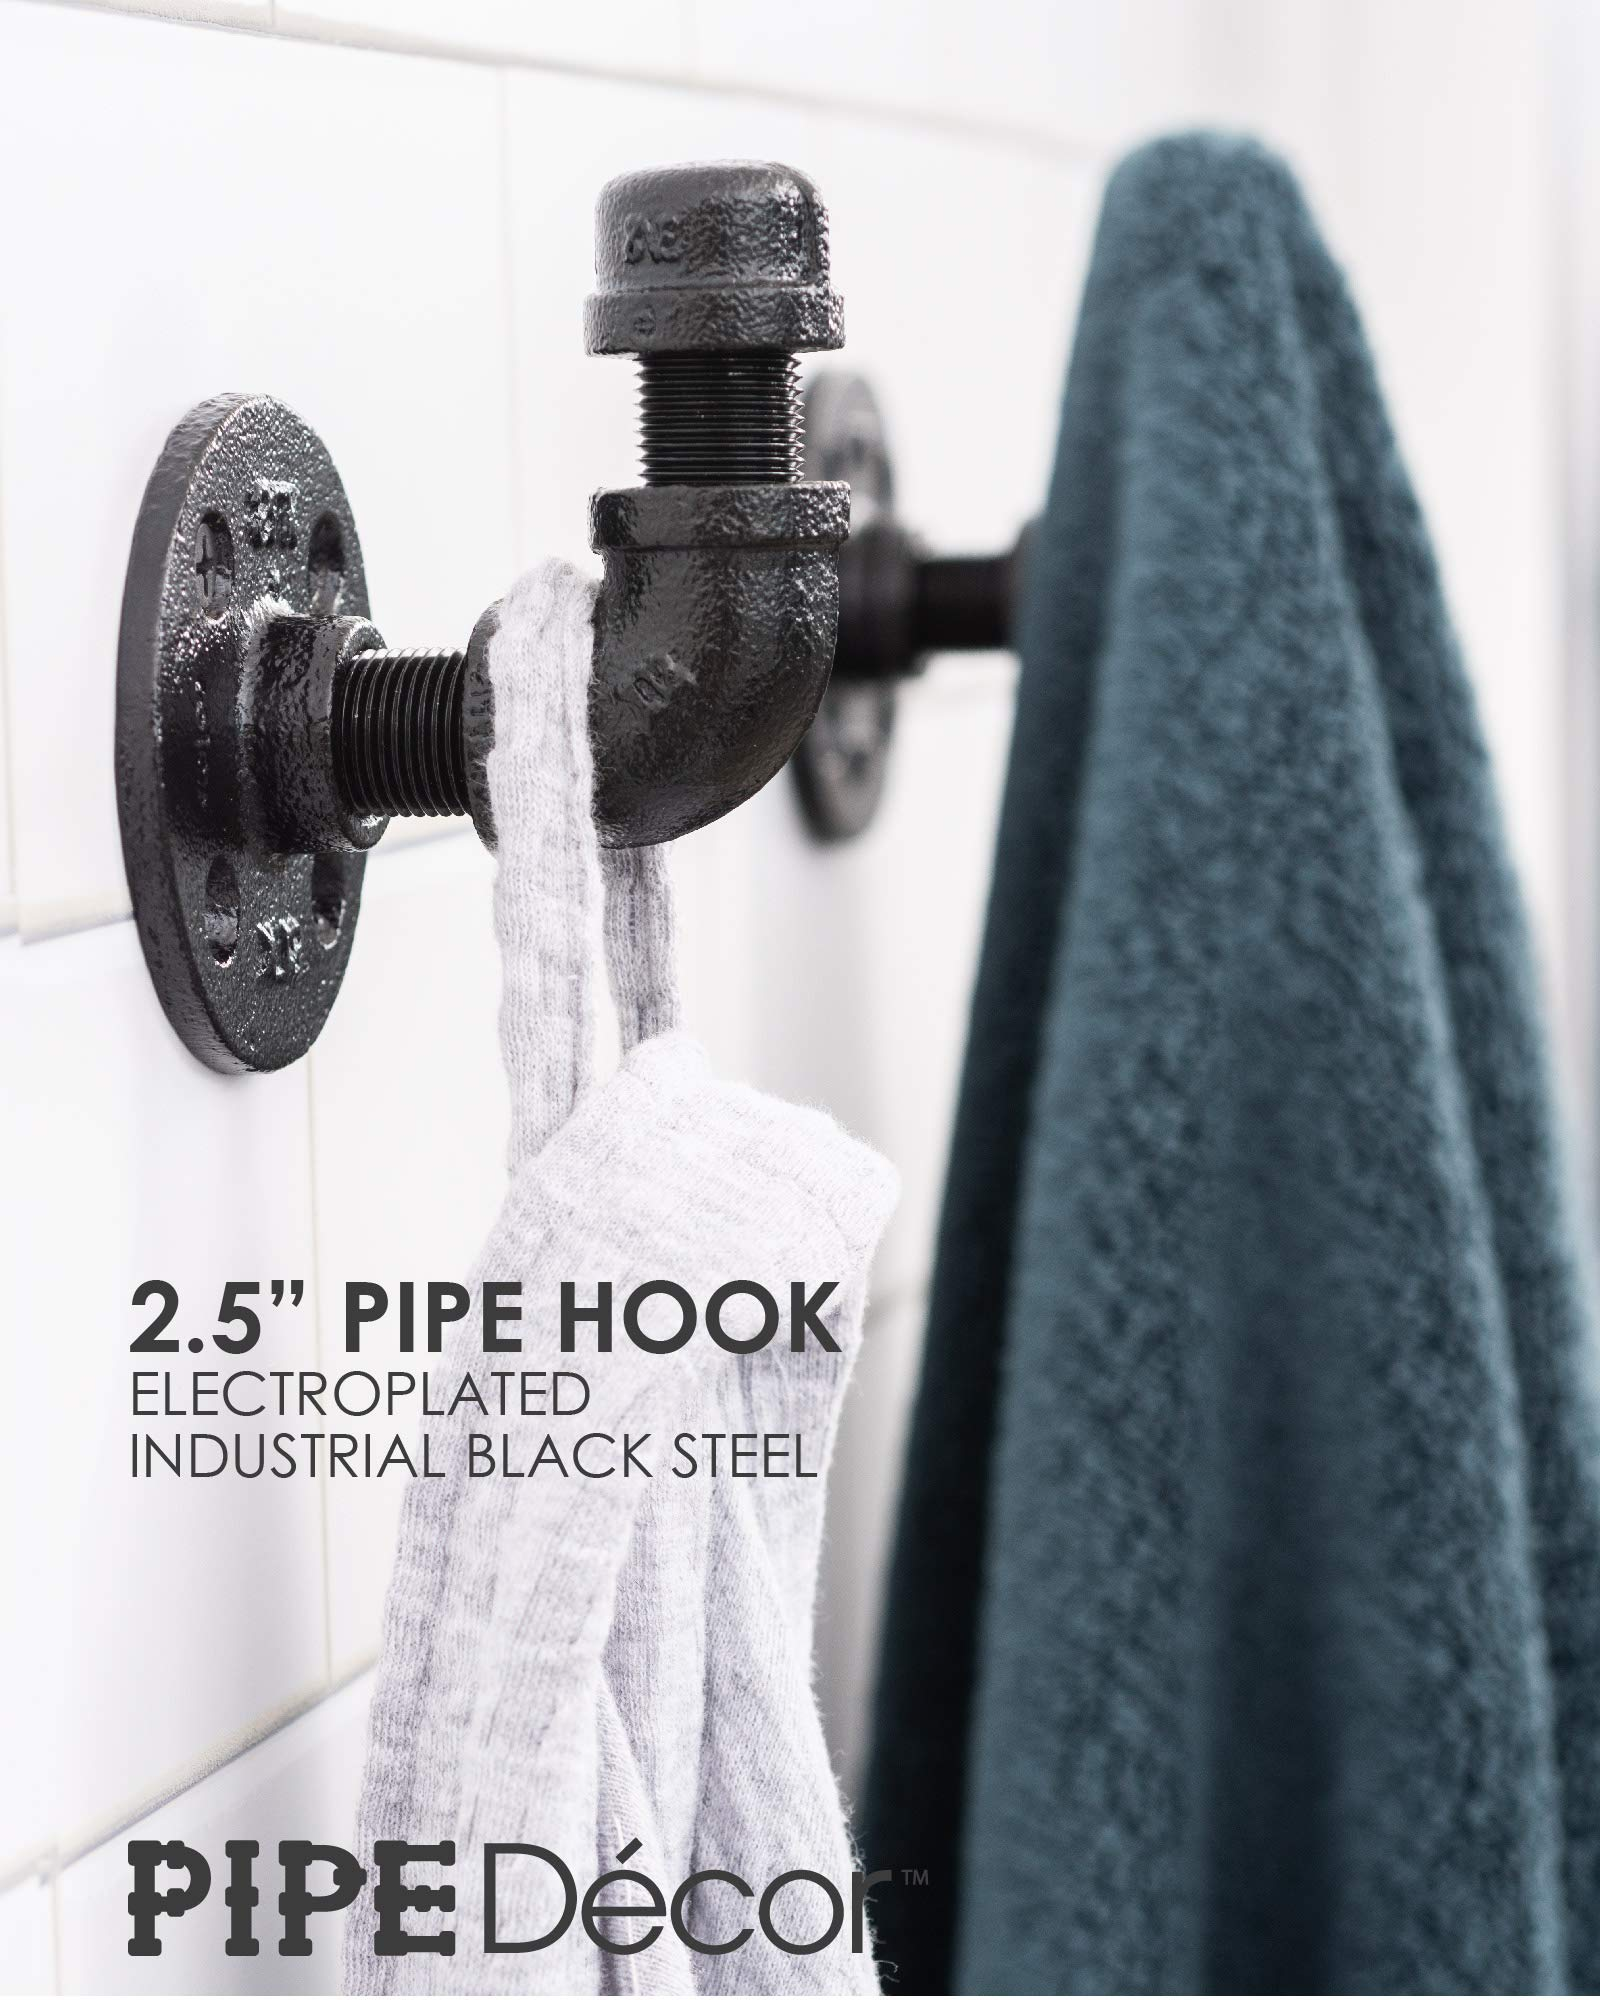 Towel and Robe Hook Set by Pipe Decor, Heavy Duty DIY Style, Rustic and Chic Industrial Iron Pipe Electroplated Black Finish, 3 Hooks Perfect for Bathroom Towels, Robes, or Coats, Oil and Rust Free 4